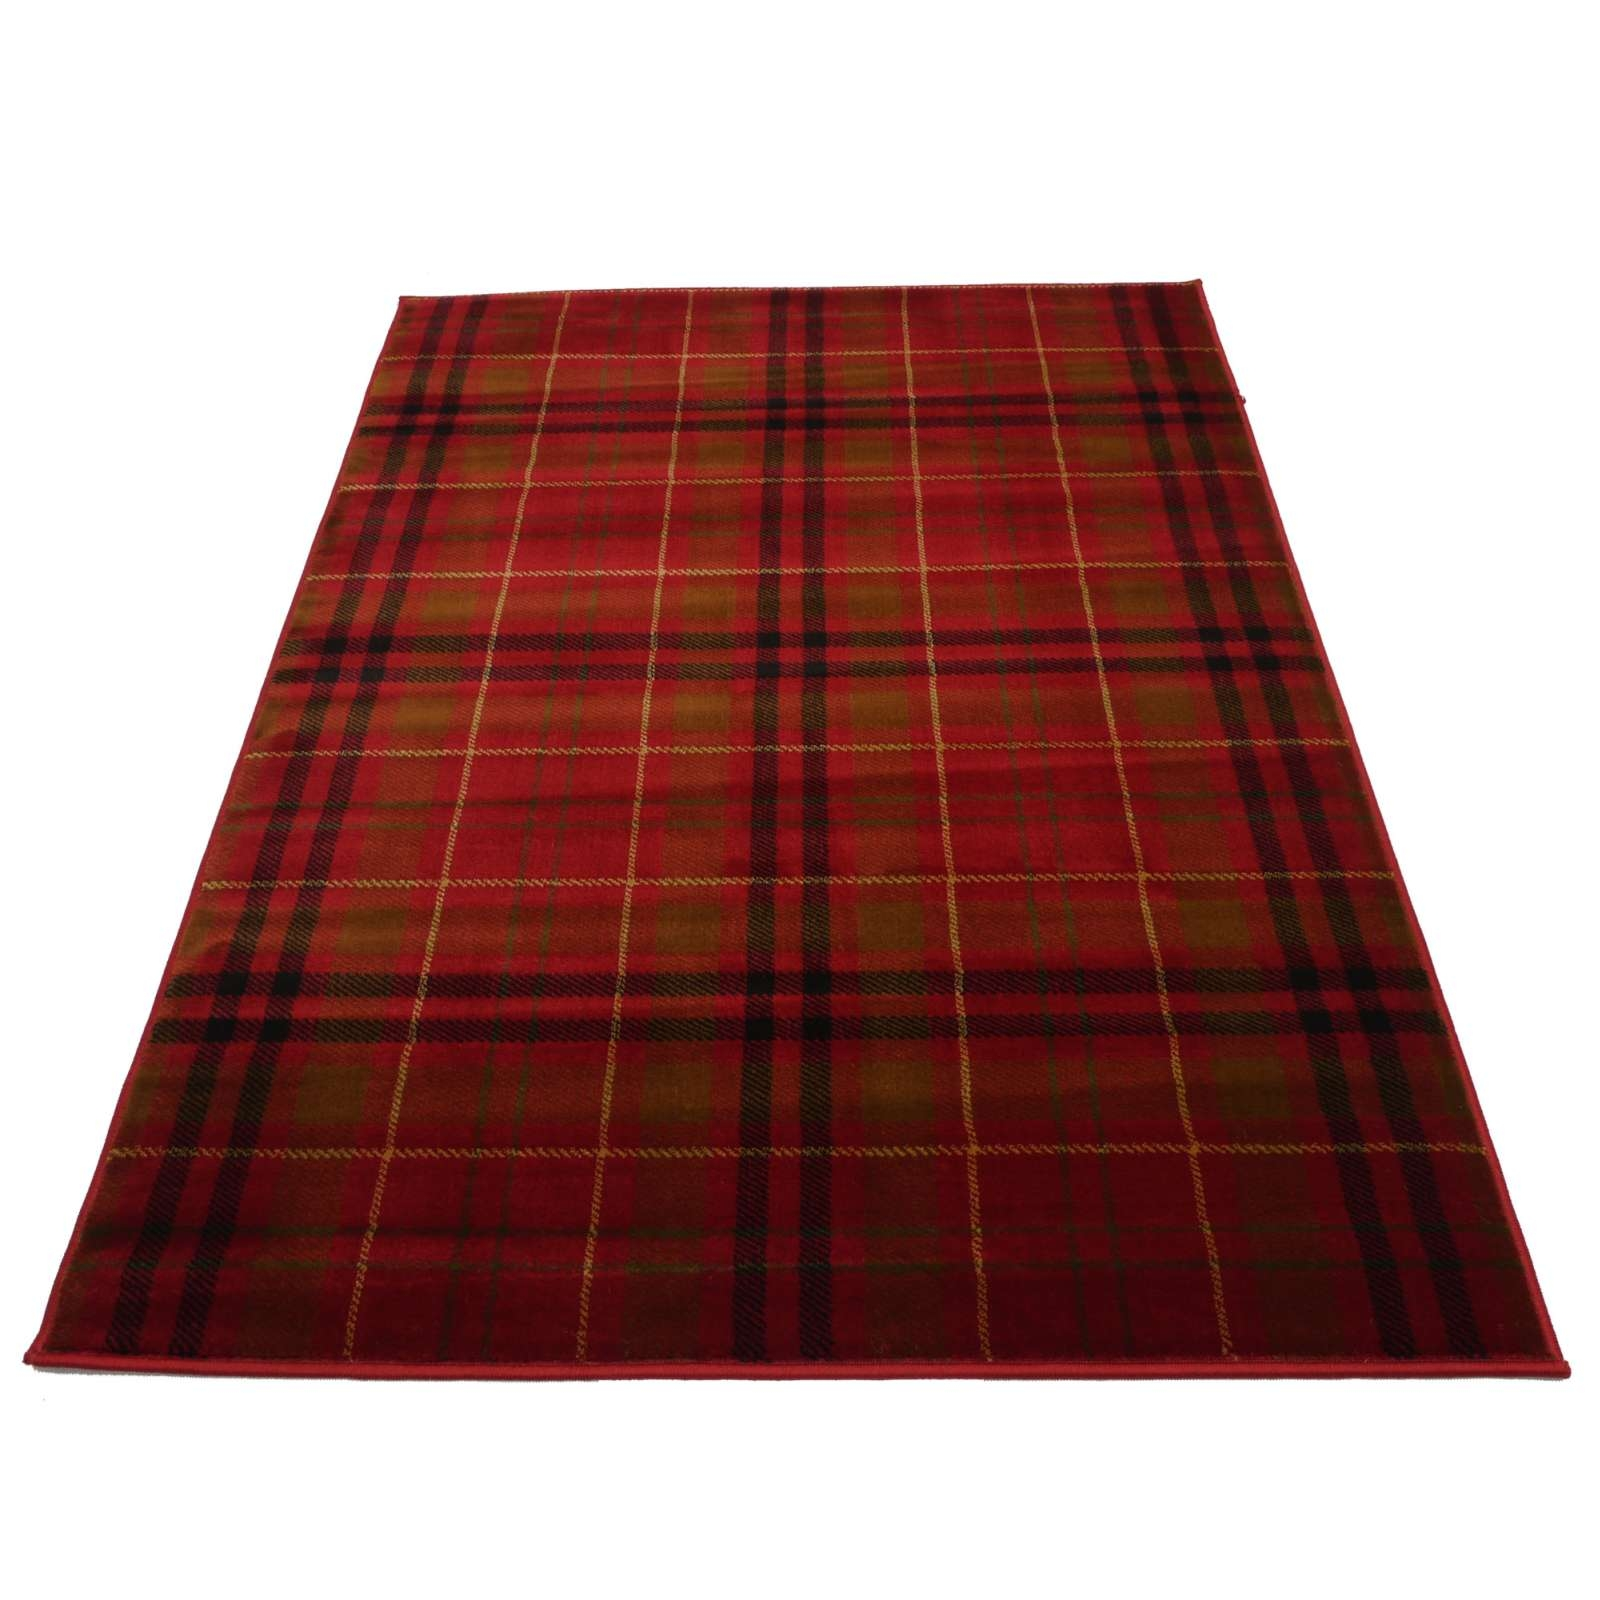 Tartan Rugs Uk Home Decors Collection Intended For Tartan Rugs (Image 12 of 15)